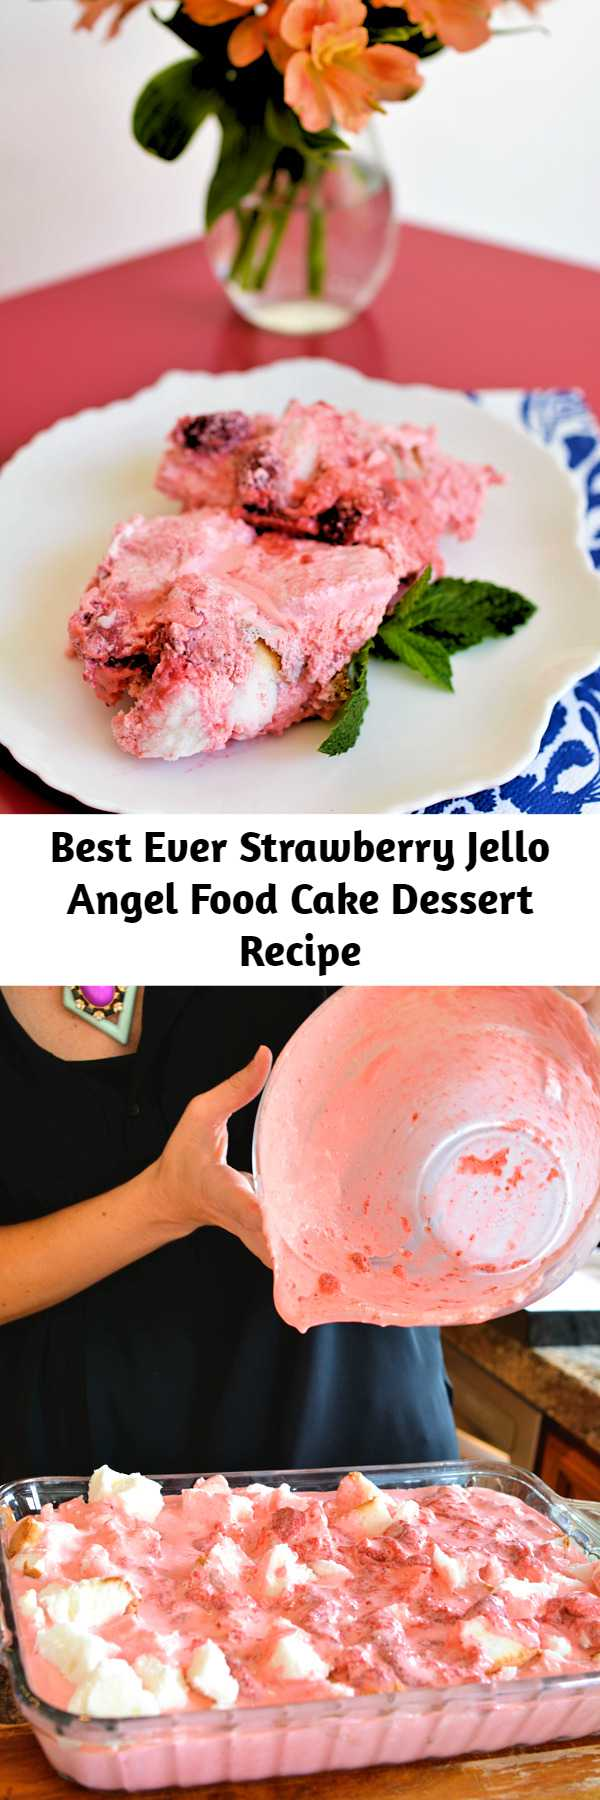 Best Ever Strawberry Jello Angel Food Cake Dessert Recipe